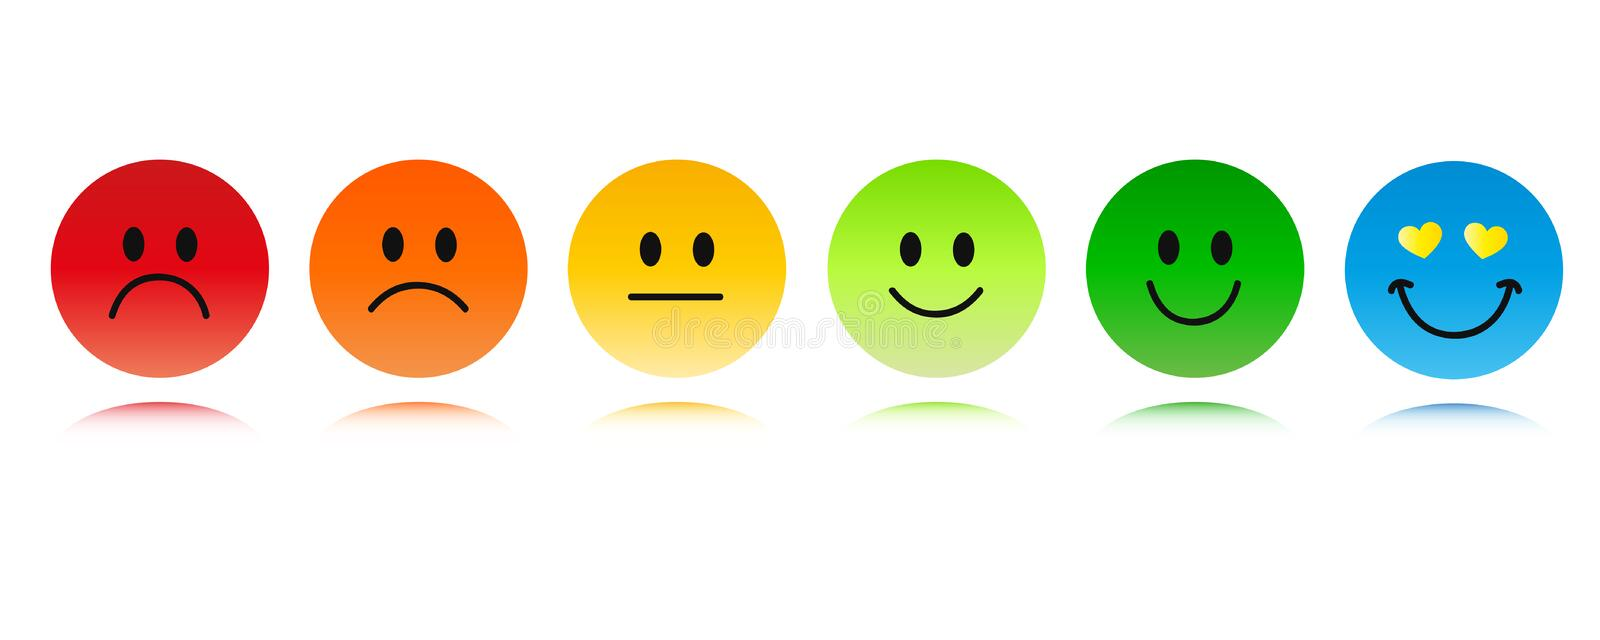 Rating six smiley faces red to green and blue stock illustration